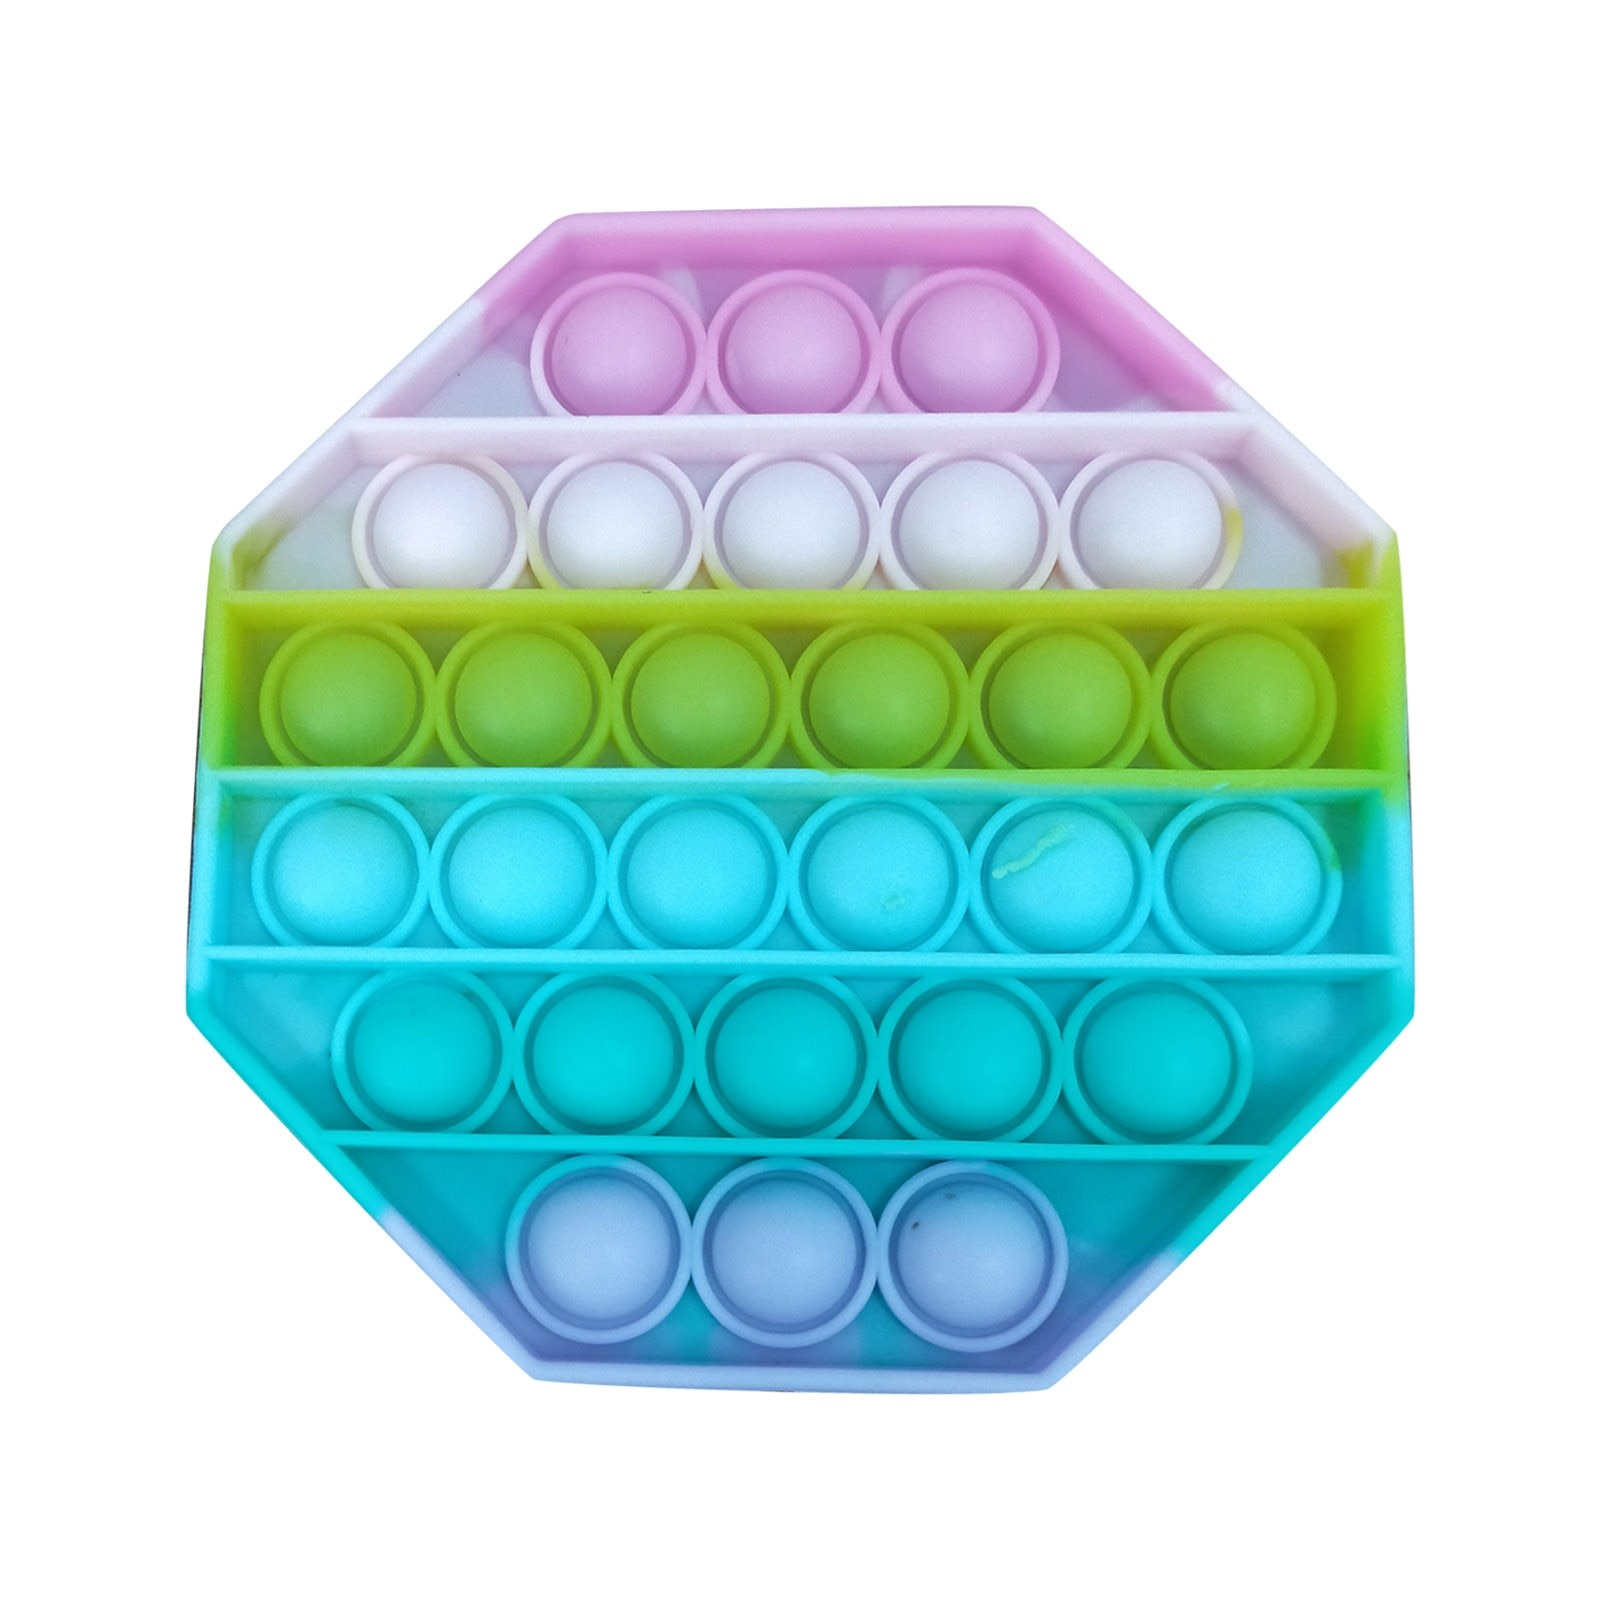 Hac4f0b0d3c9a49cd9940d321632ccc27L - Push Bubble Pop Fidget Reliver Stress Toy Rainbow Antistress Toys Adults Children Sensory Toys to Relieve Autism Free Shipping